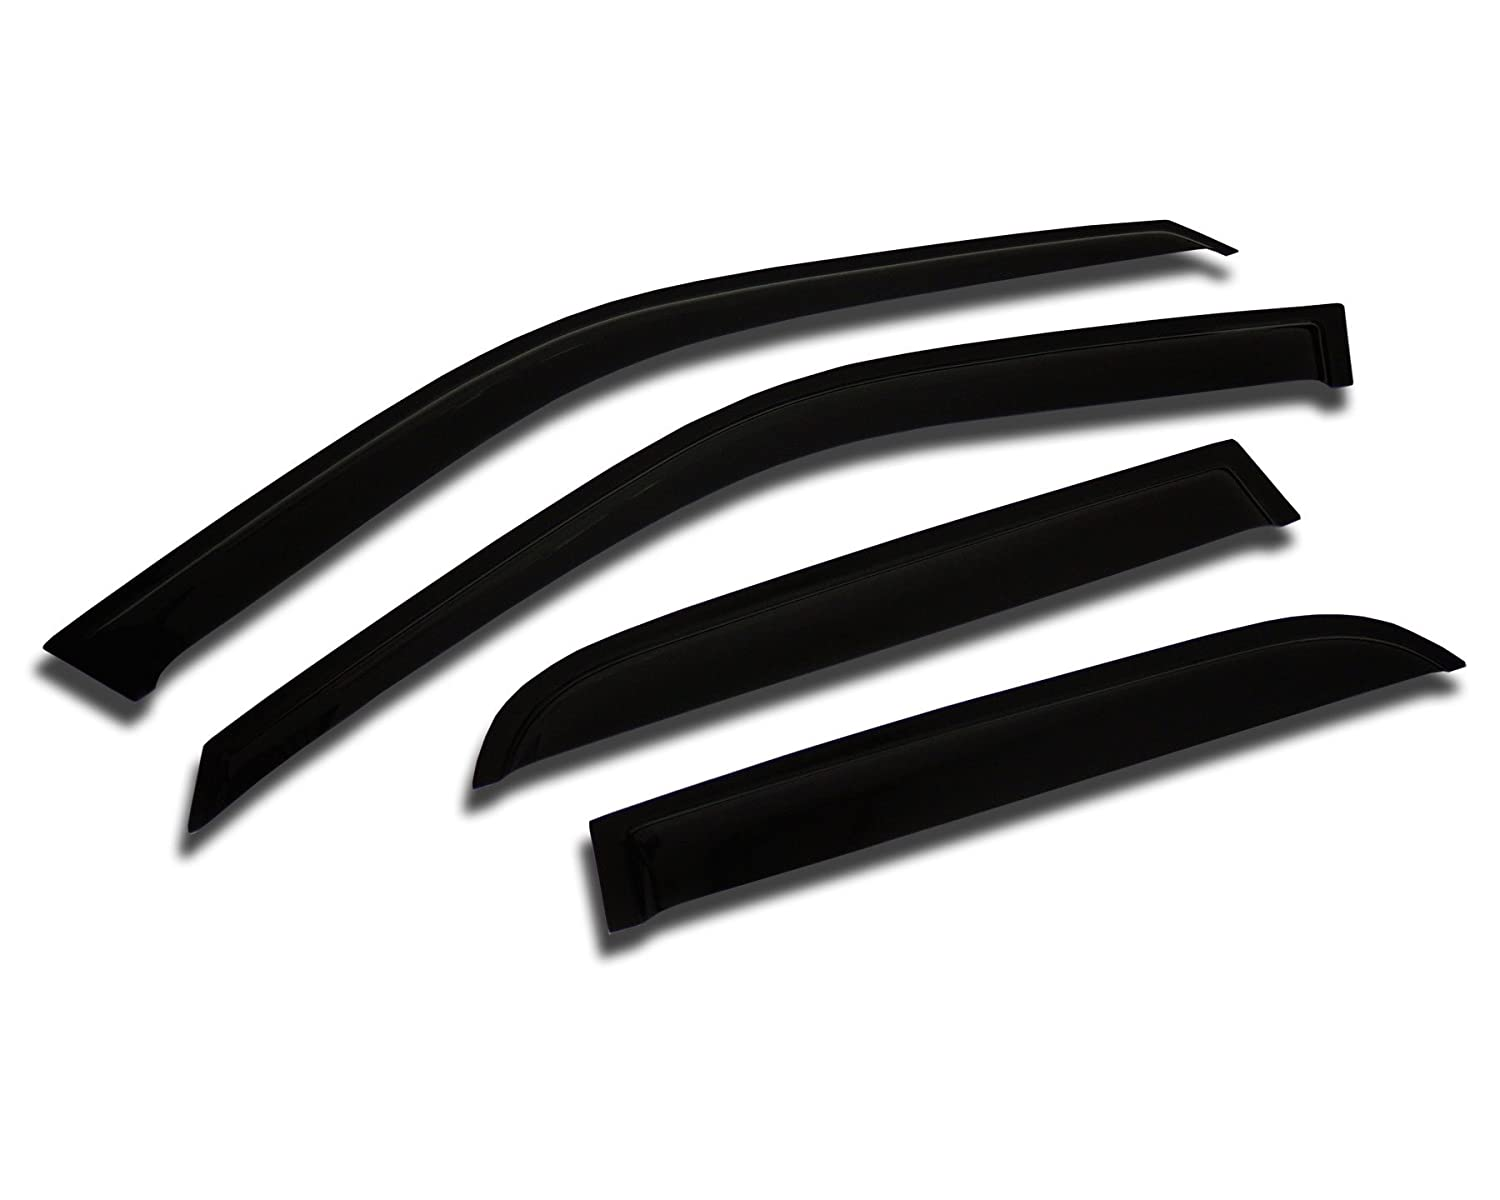 TuningPros WV2M-505 Outside Mount 2.0mm Window Visor Deflector Rain Guard Dark Smoke 4 Pcs Set Compatible With 2003-2008 Infiniti FX35 FX45